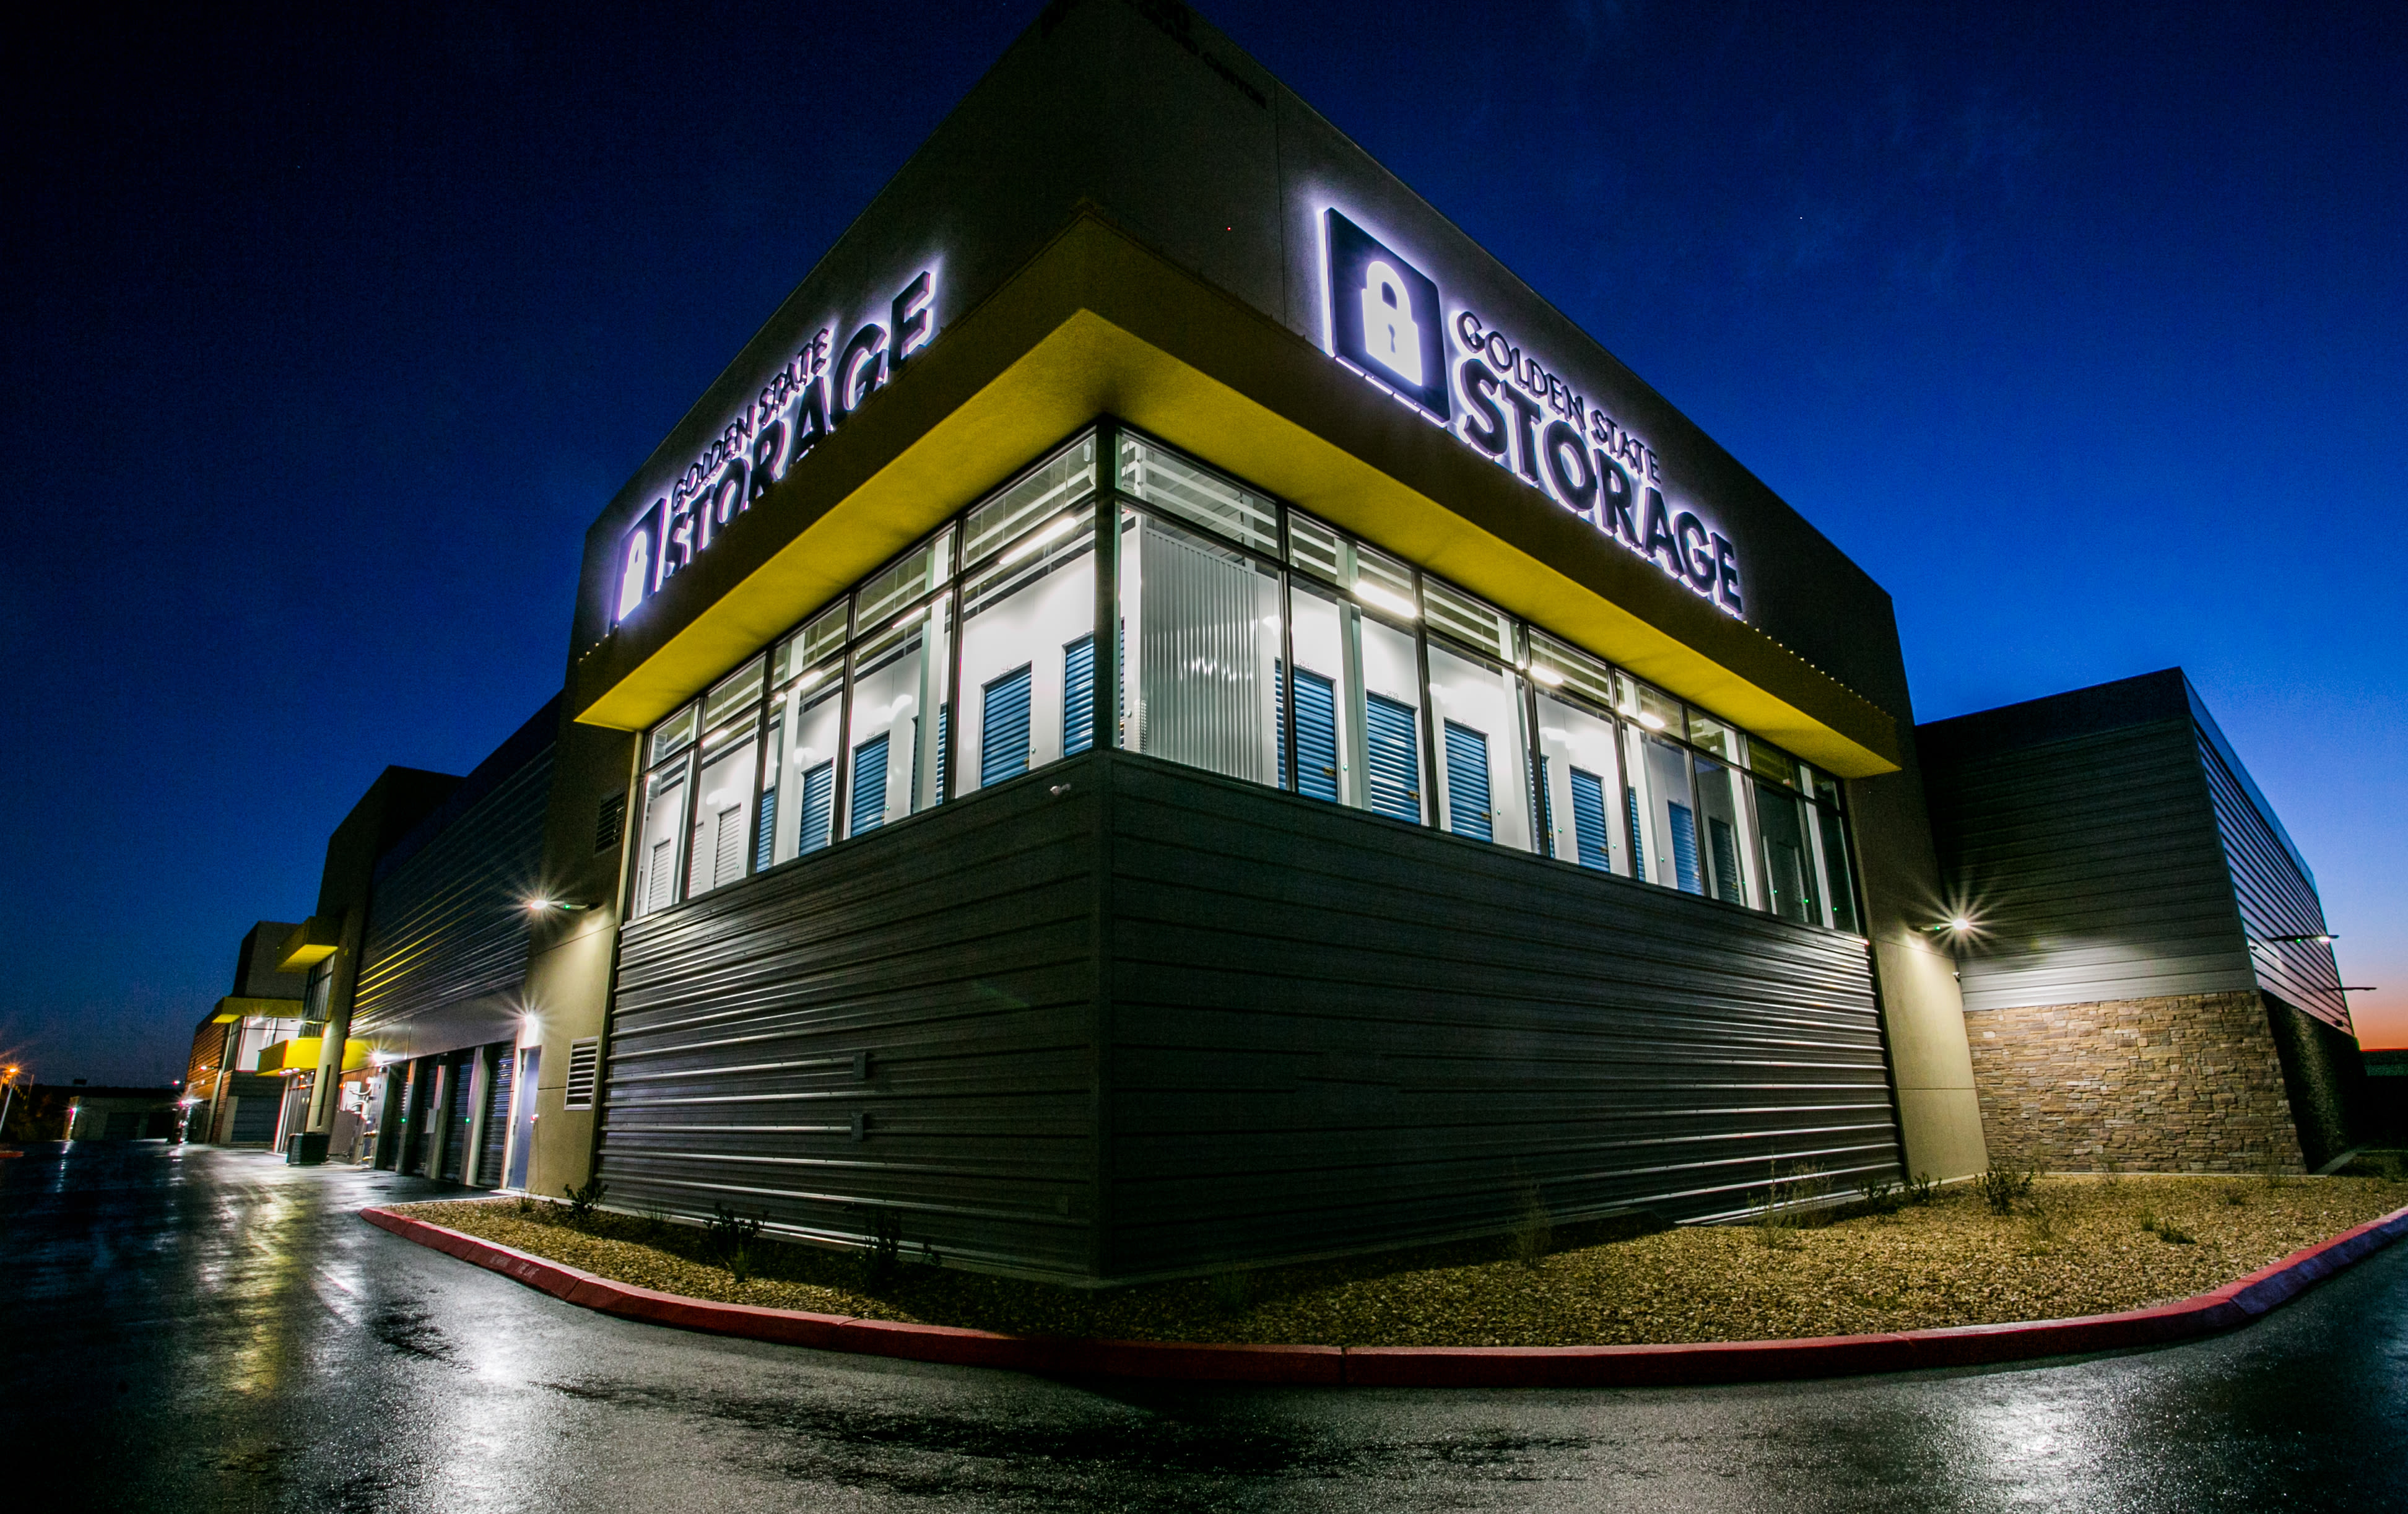 Close up exterior at night of Golden State Storage - Blue Diamond in Las Vegas, Nevada